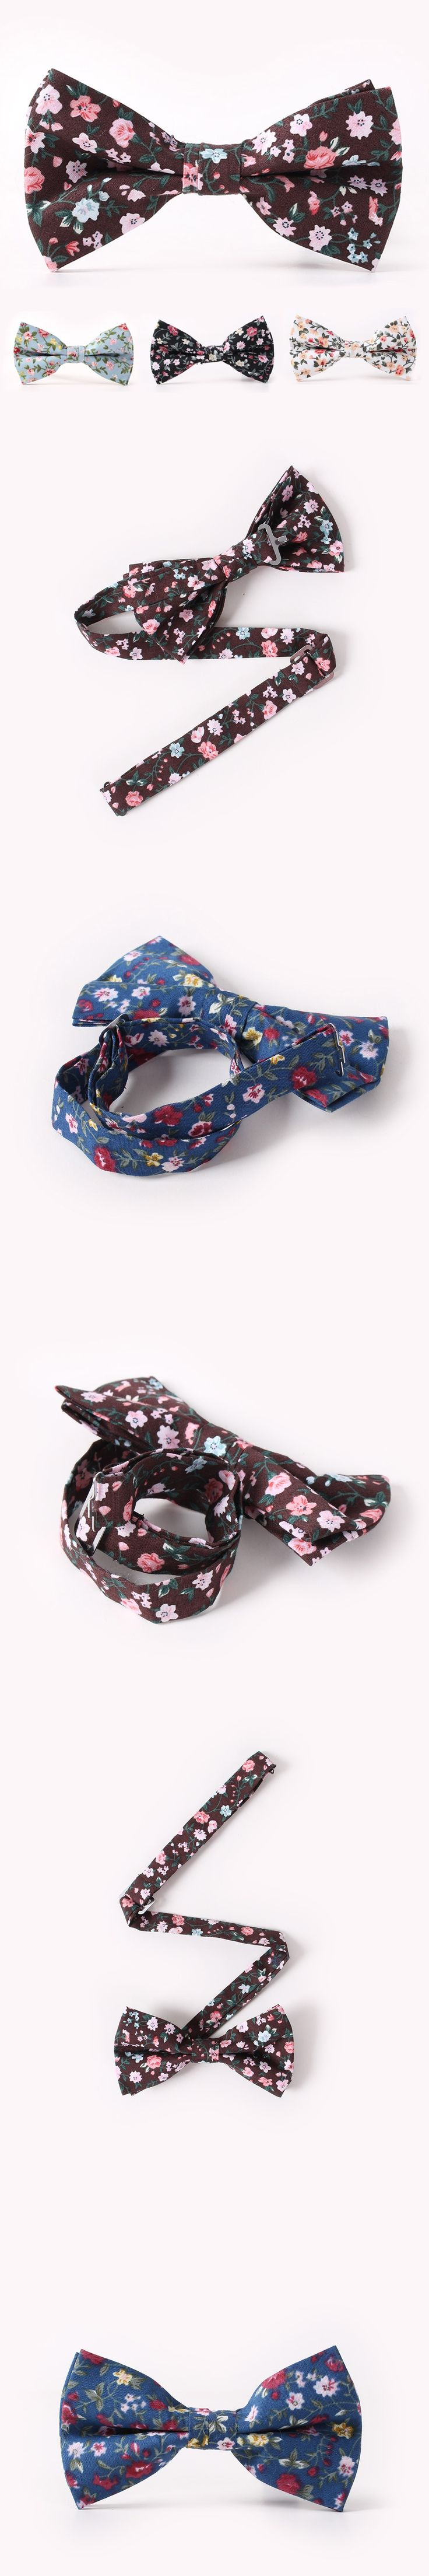 Bow Tie Fashion Floral Womens Wedding Cravat Party Butterfly Tie Mens Casual Business Bowtie 100% Cotton Free Shipping